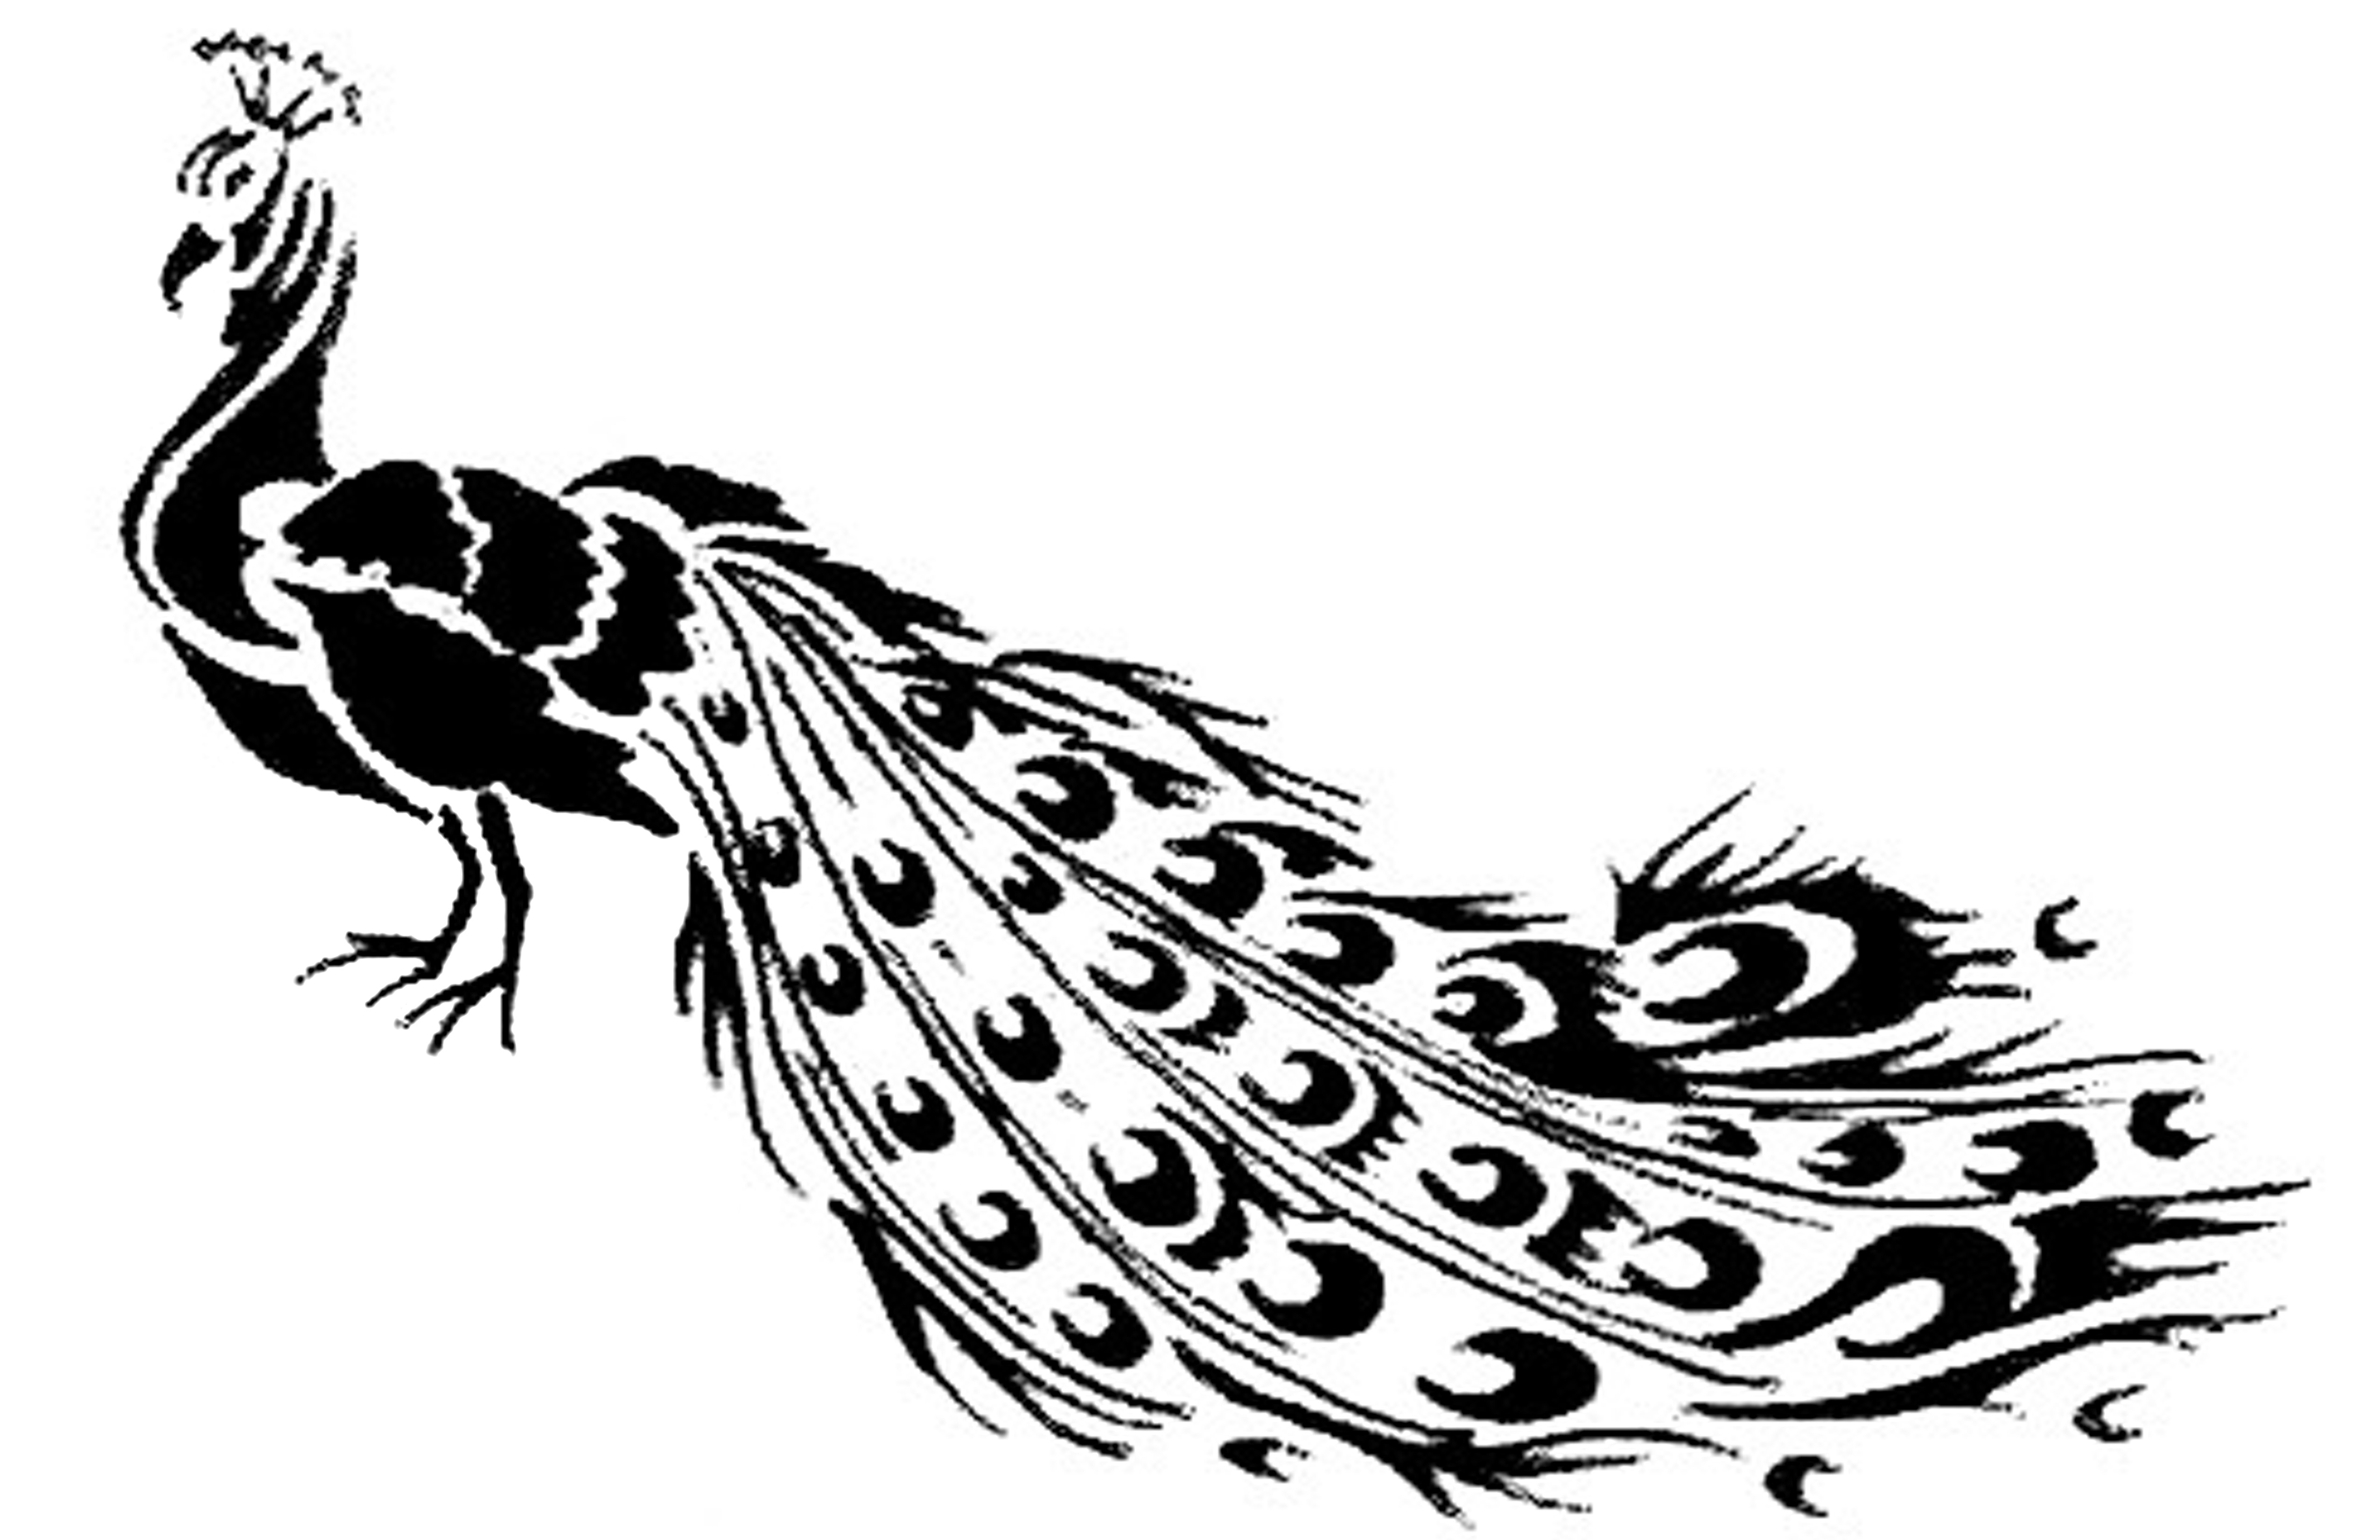 Peacock Black And White Drawing At Getdrawings